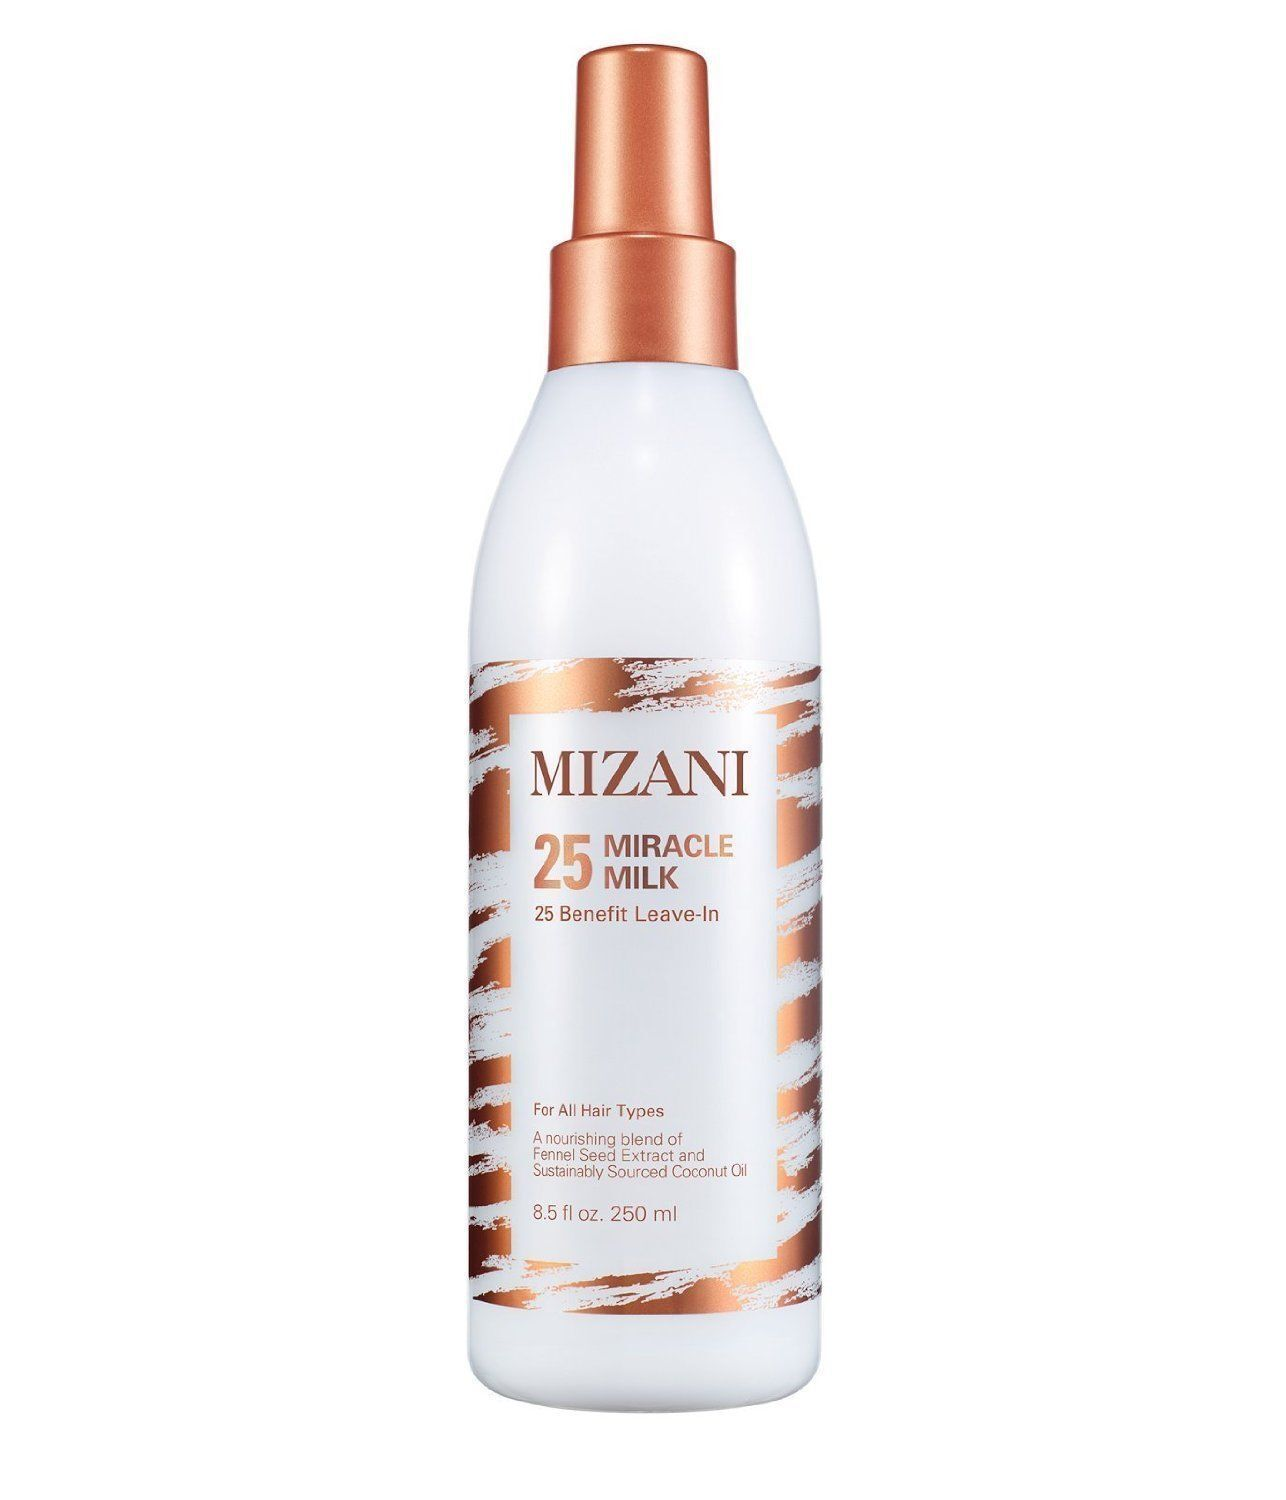 Mizani Miracle Milk 25 Leave In 8.5oz Hair Care & Styling